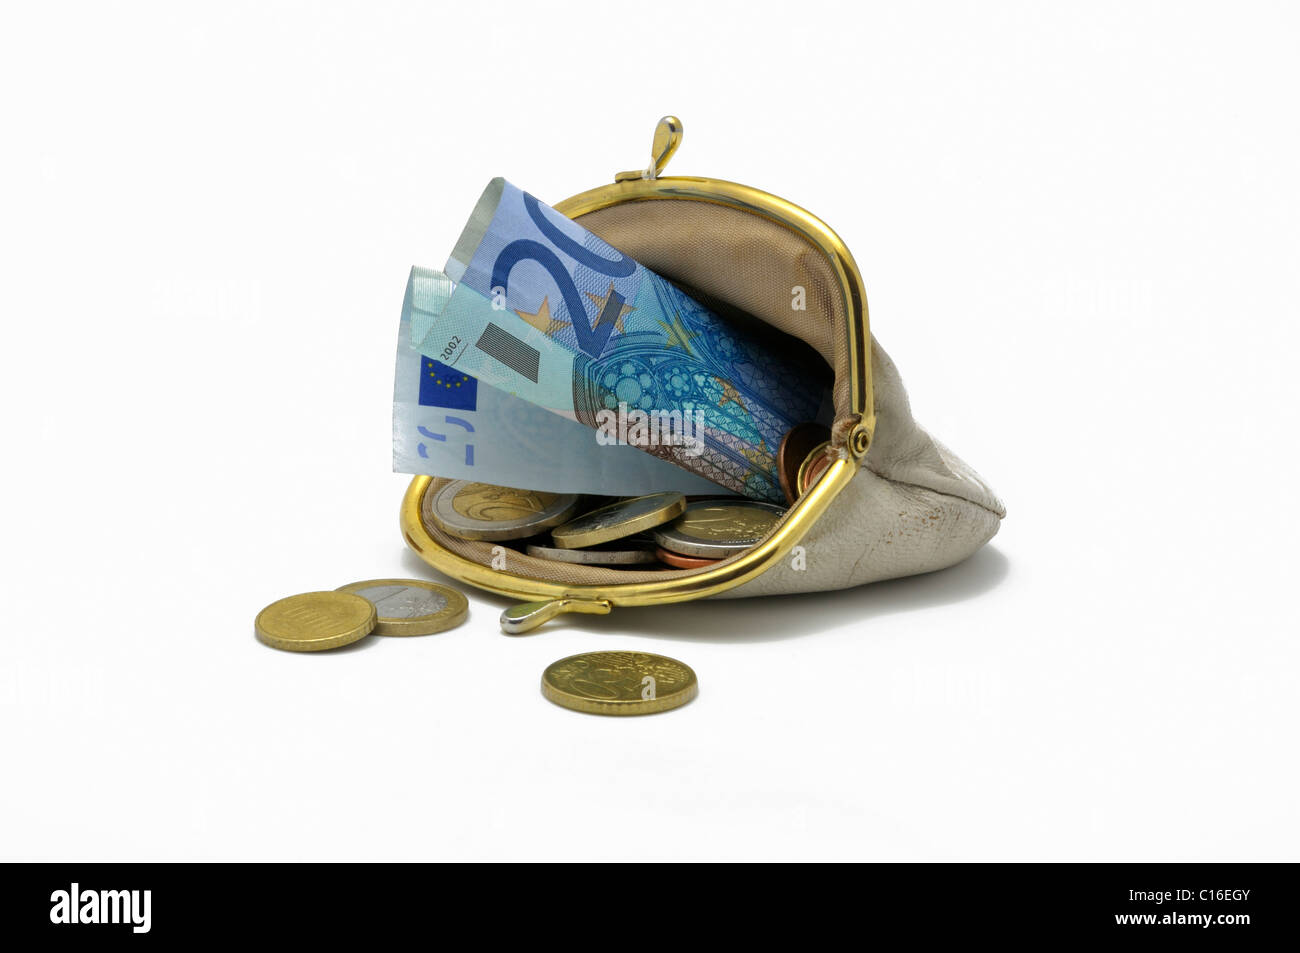 White, hackneyed purse with clip mechanism, filled with a 20 Euro banknote and various Euro coins - Stock Image